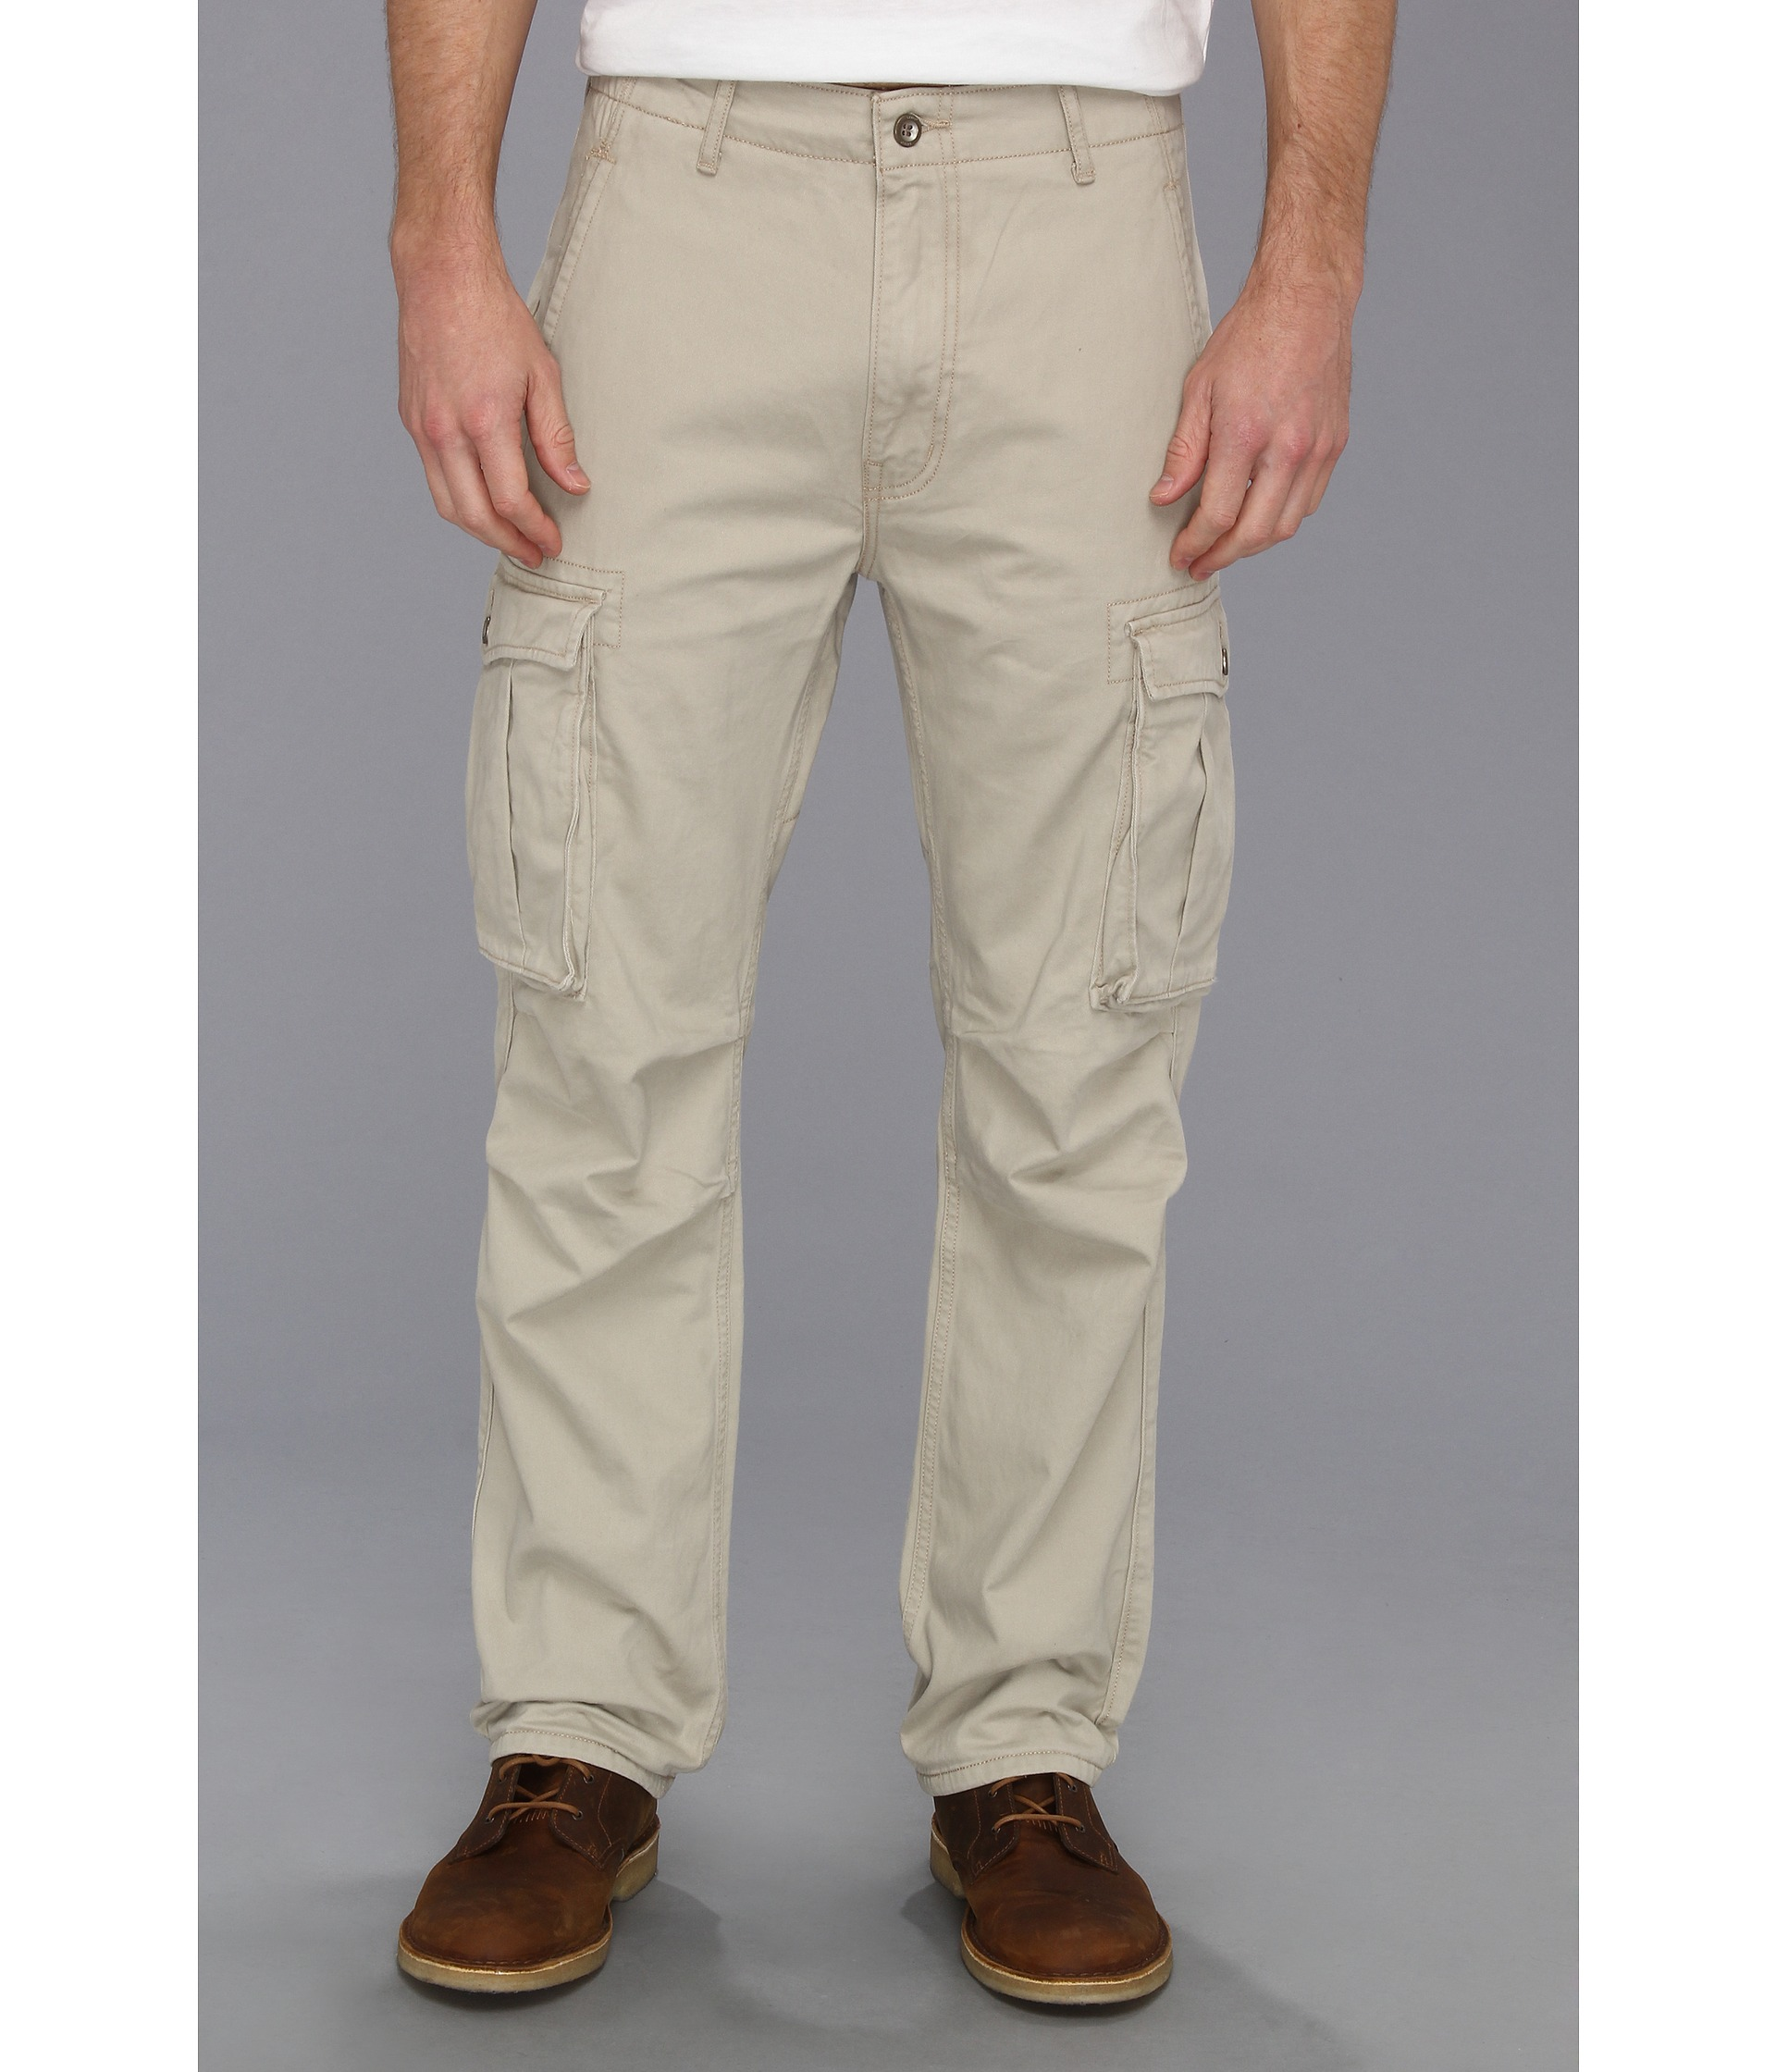 Levi Cargo Pants For Men Men Levi Cargo Pants